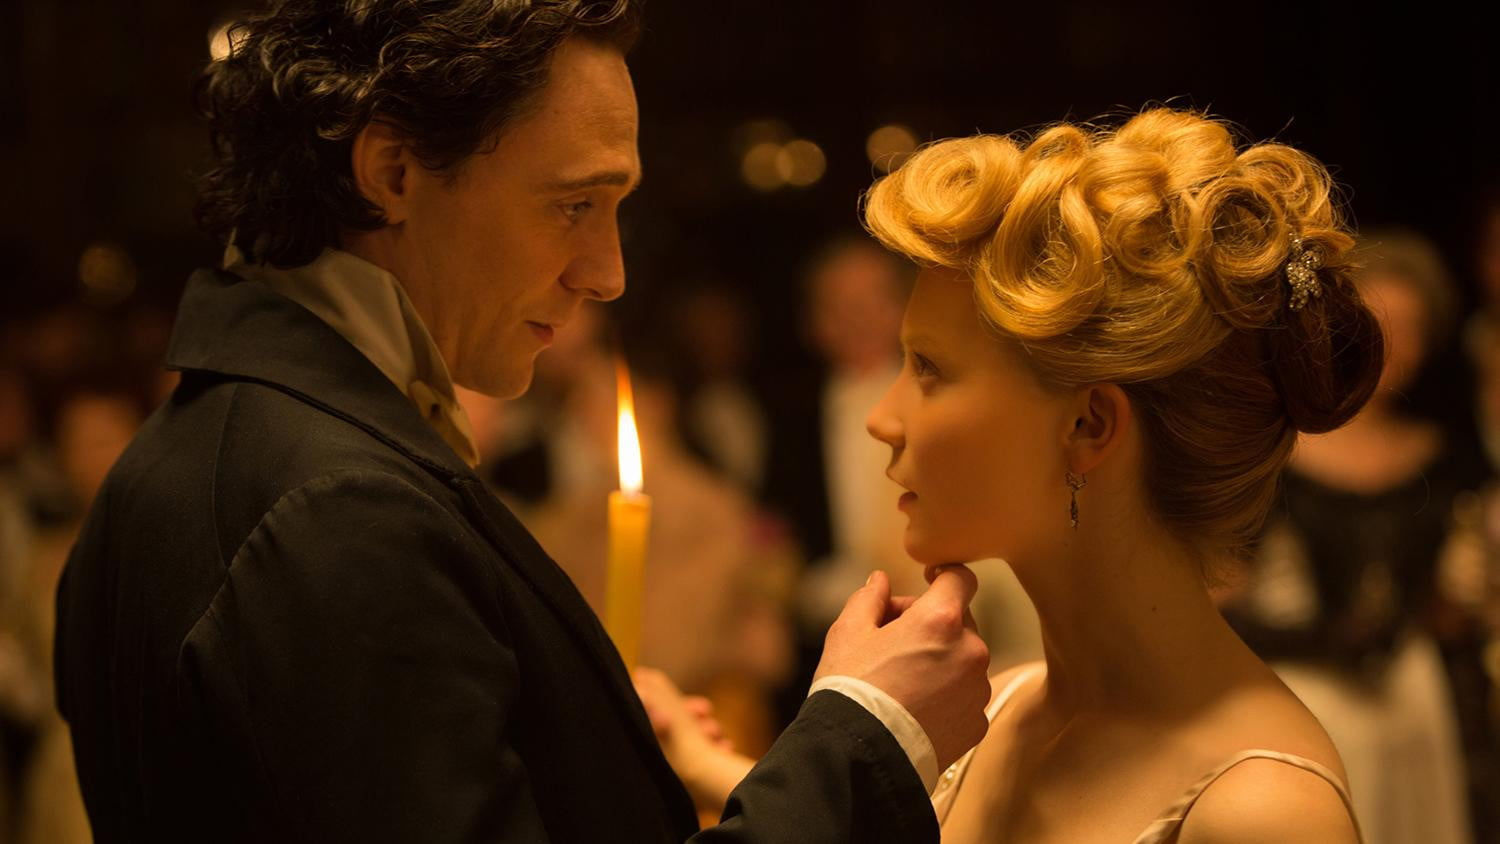 http://icdn8.digitaltrends.com/image/crimson-peak-10-1500x844.jpg